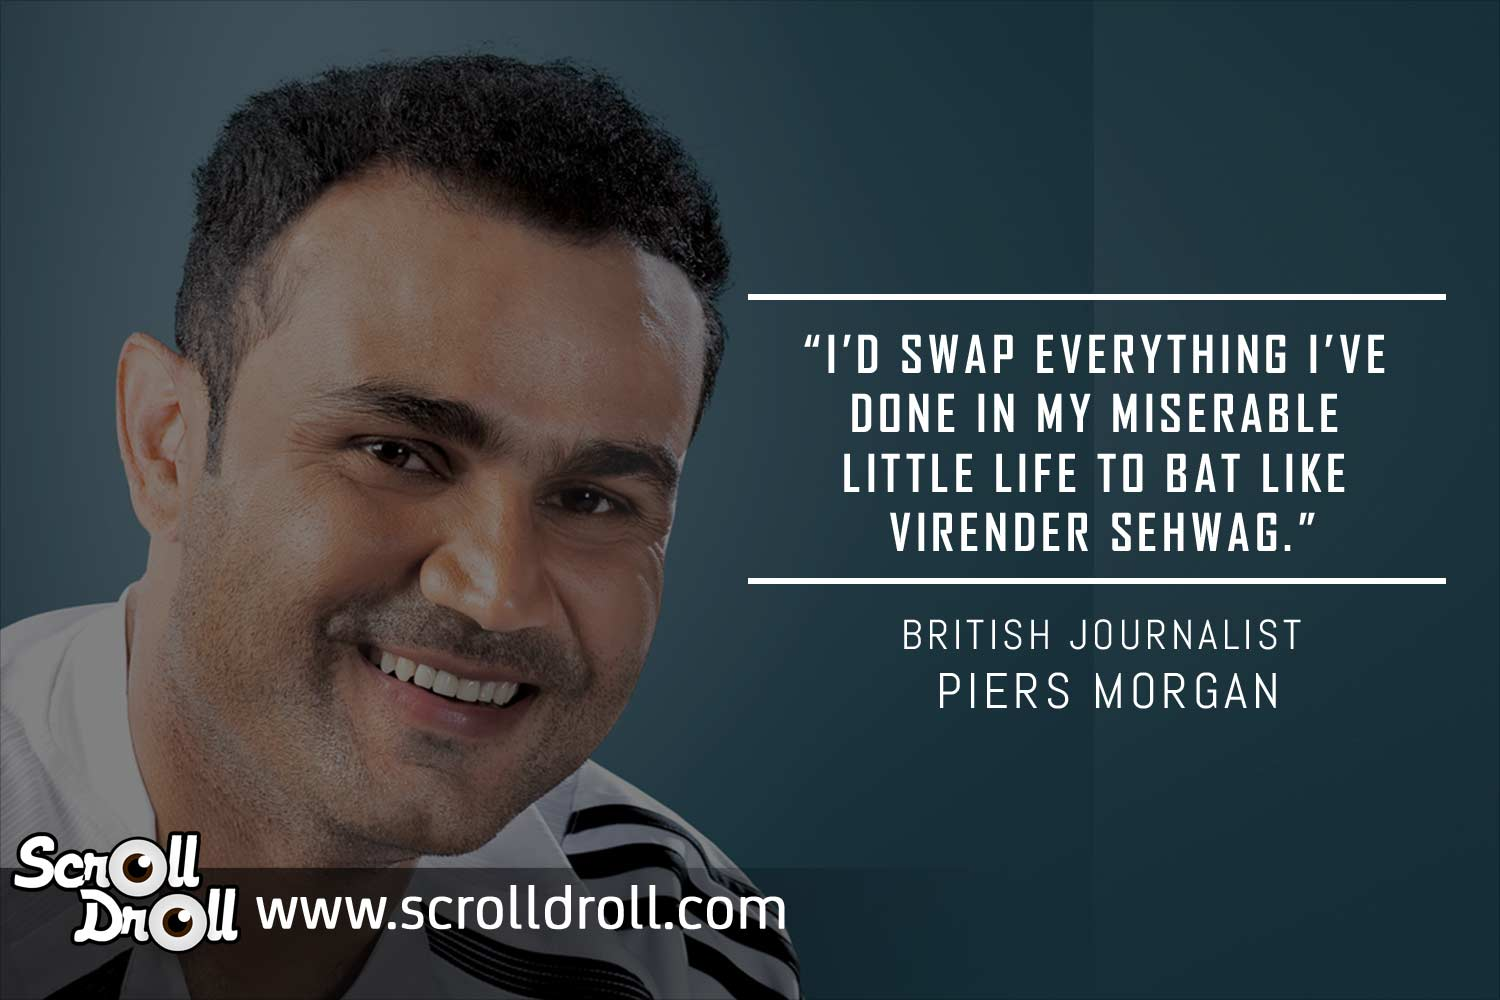 Quotes Of Inspiration And Love batting legend decided...